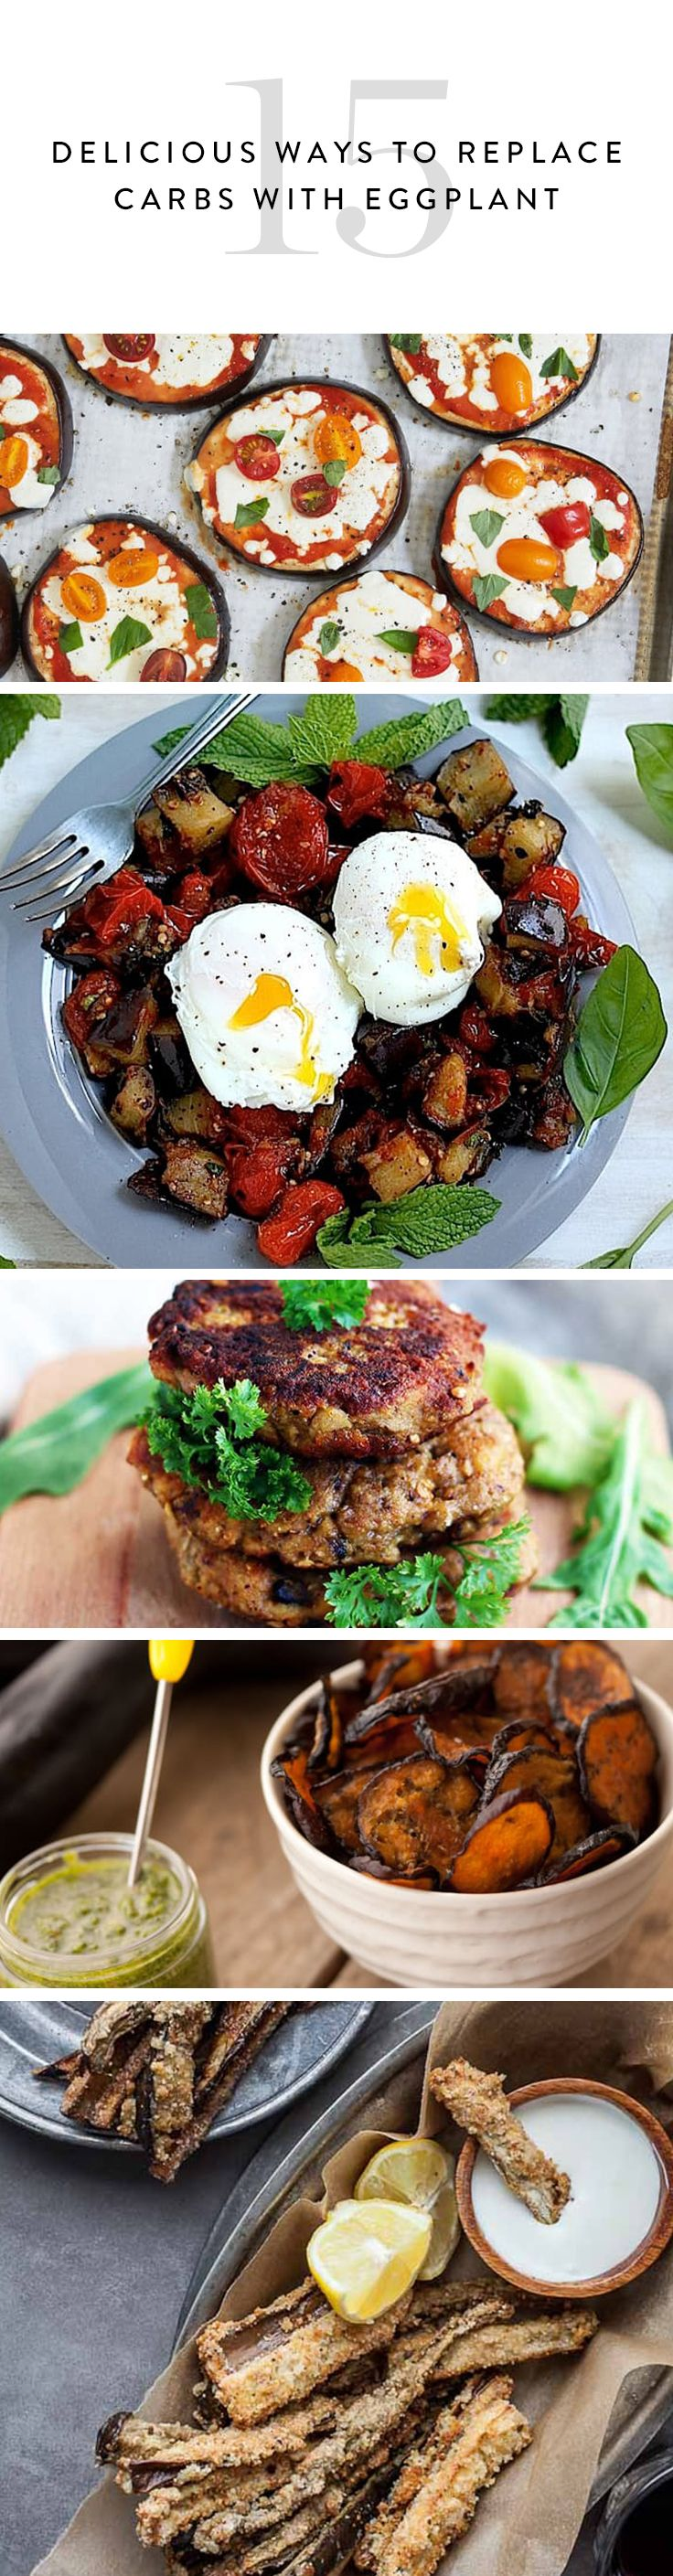 15 Delicious Ways to Replace Carbs with Eggplant